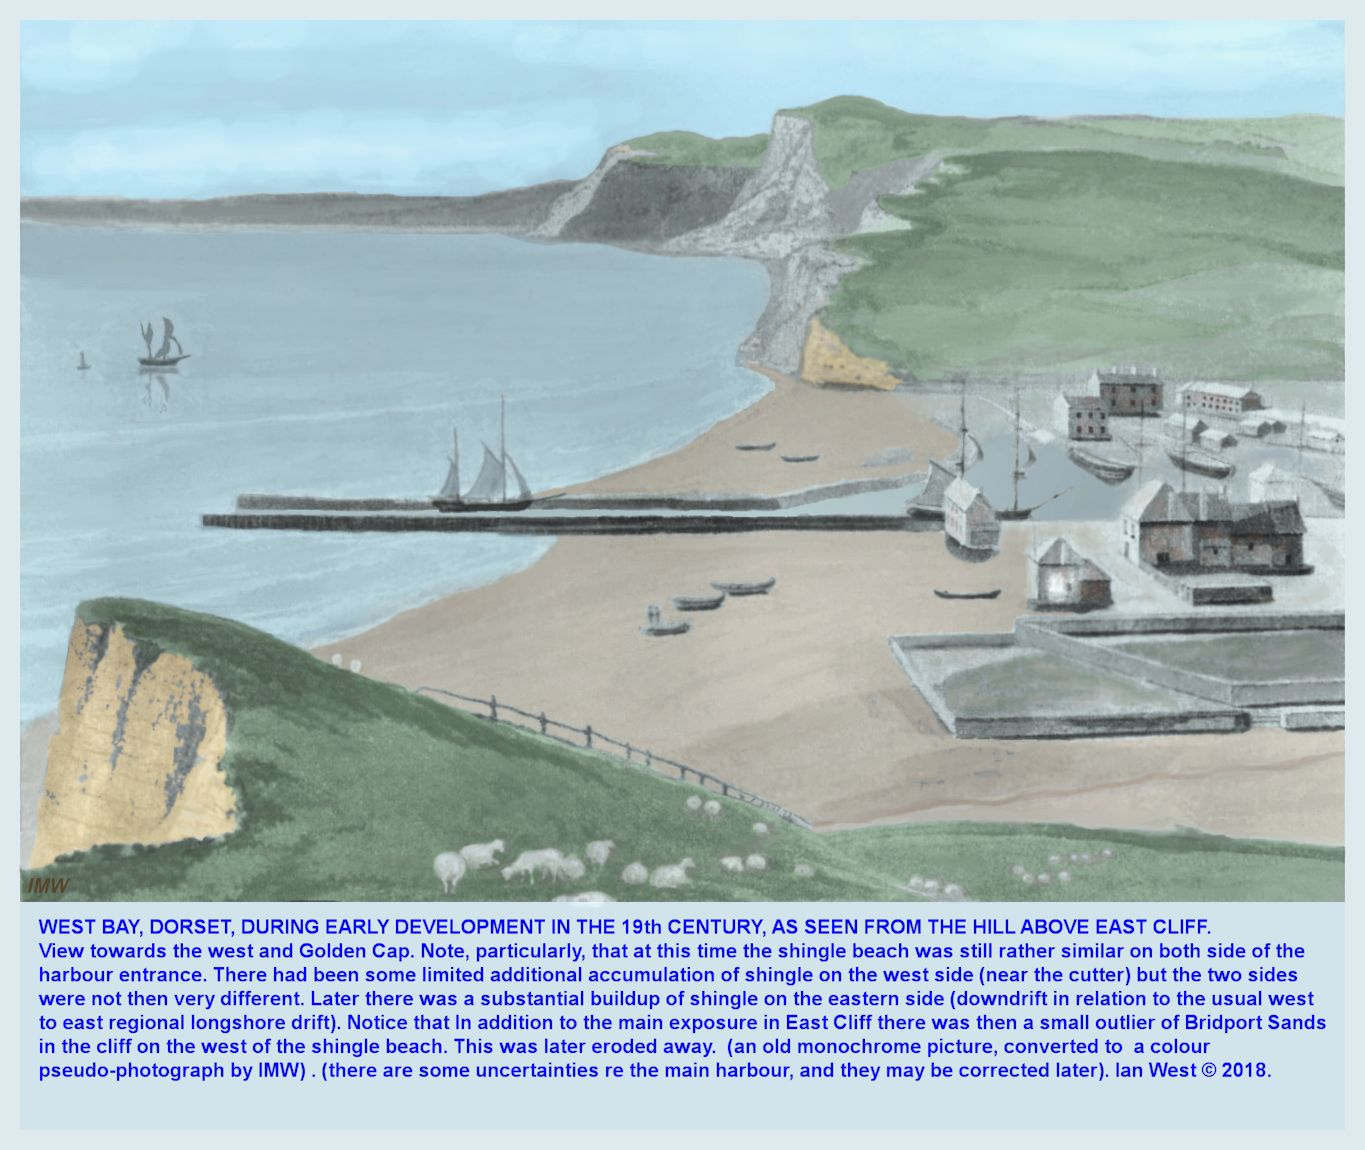 An old image of Bridport Beach and Harbour, to show the distribution of shingle in the early days of the harbour, - reconstructed as a new image in colour, and with bit-by-bit smoothing, and contrast changes etc, by Ian West